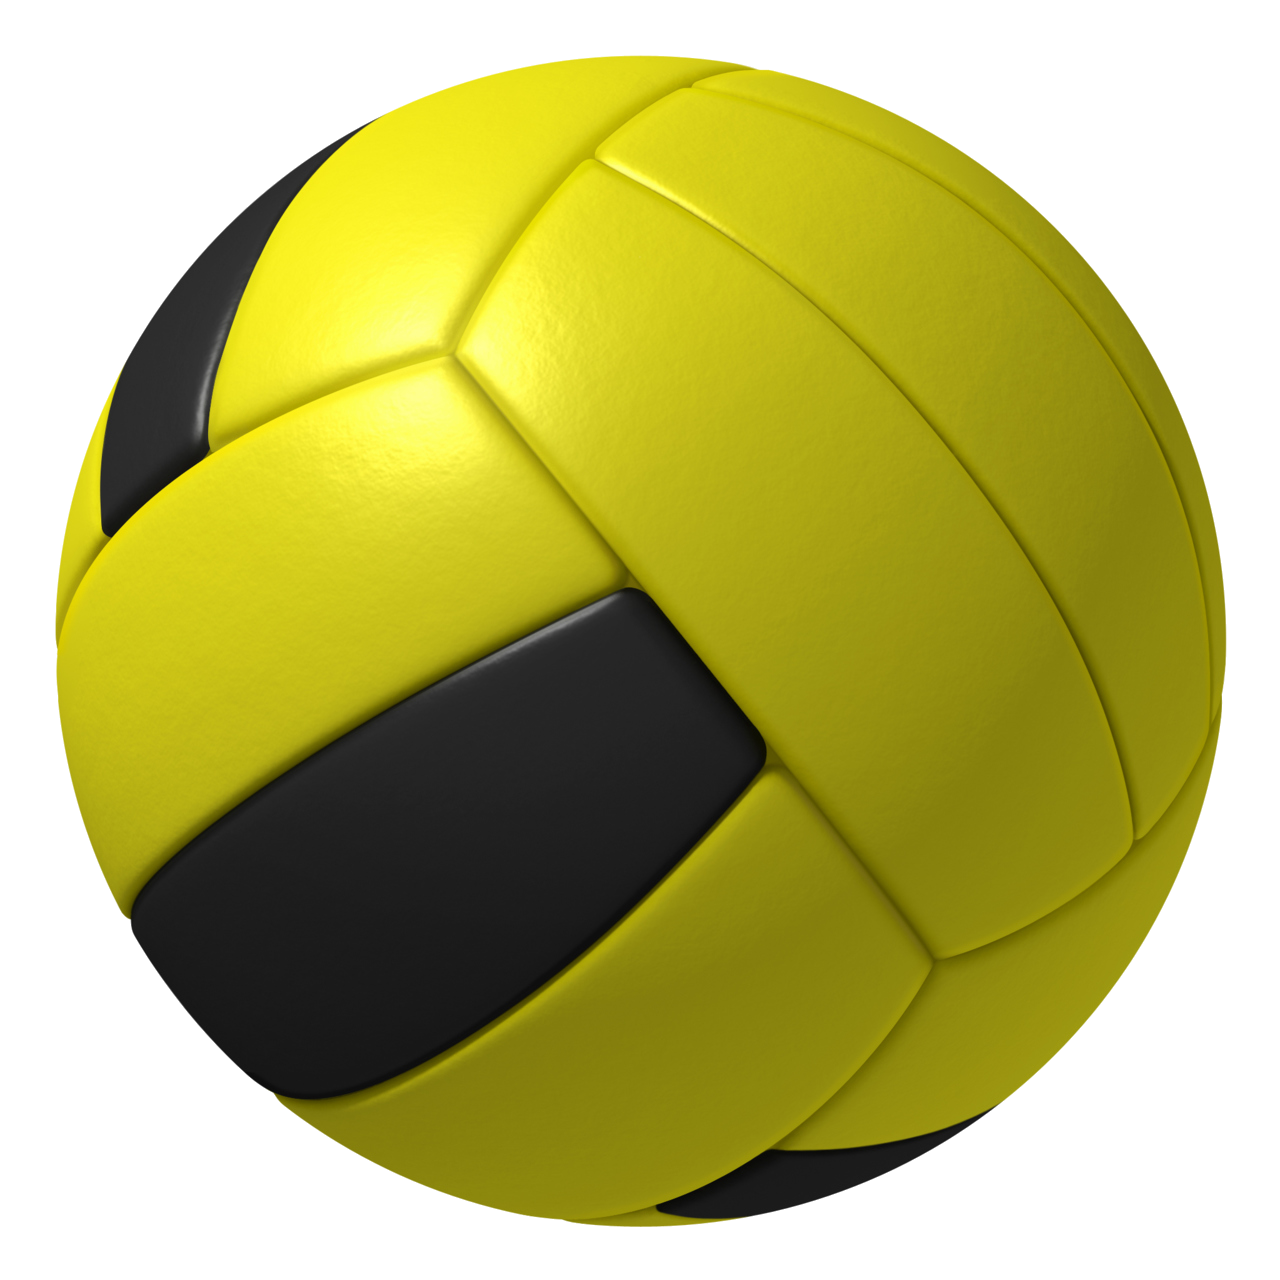 Balls Png - Sports Ball Png & Free Sports Ball.png Transparent Images #11615 ...